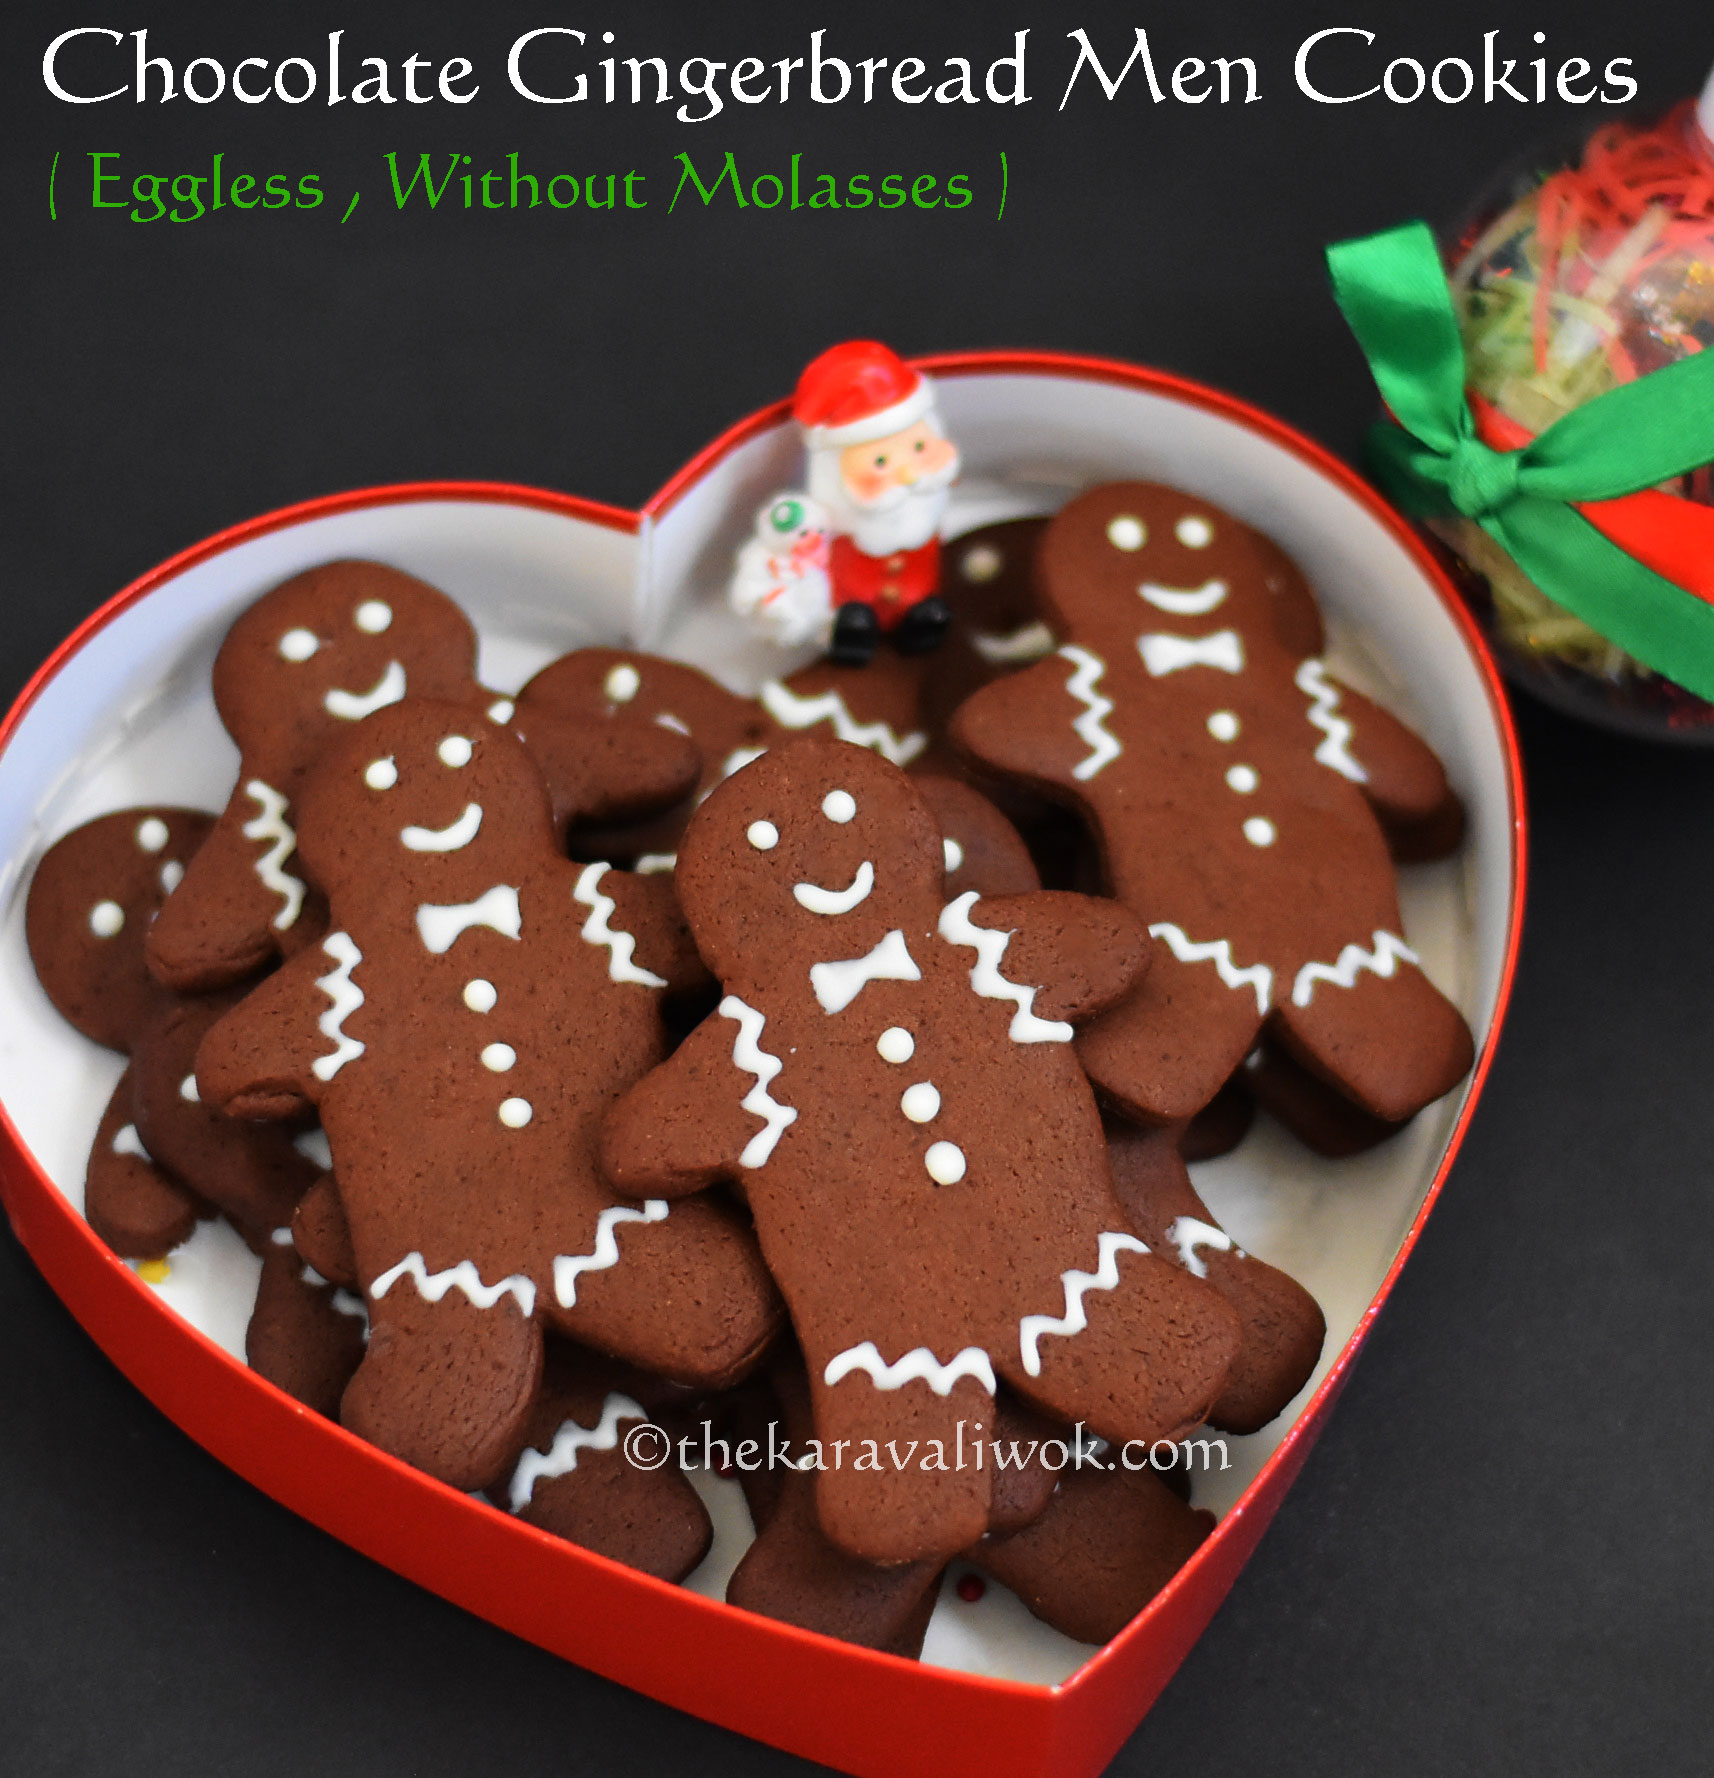 Eggless Chocolate Gingerbread Men Cookies Without Molasses